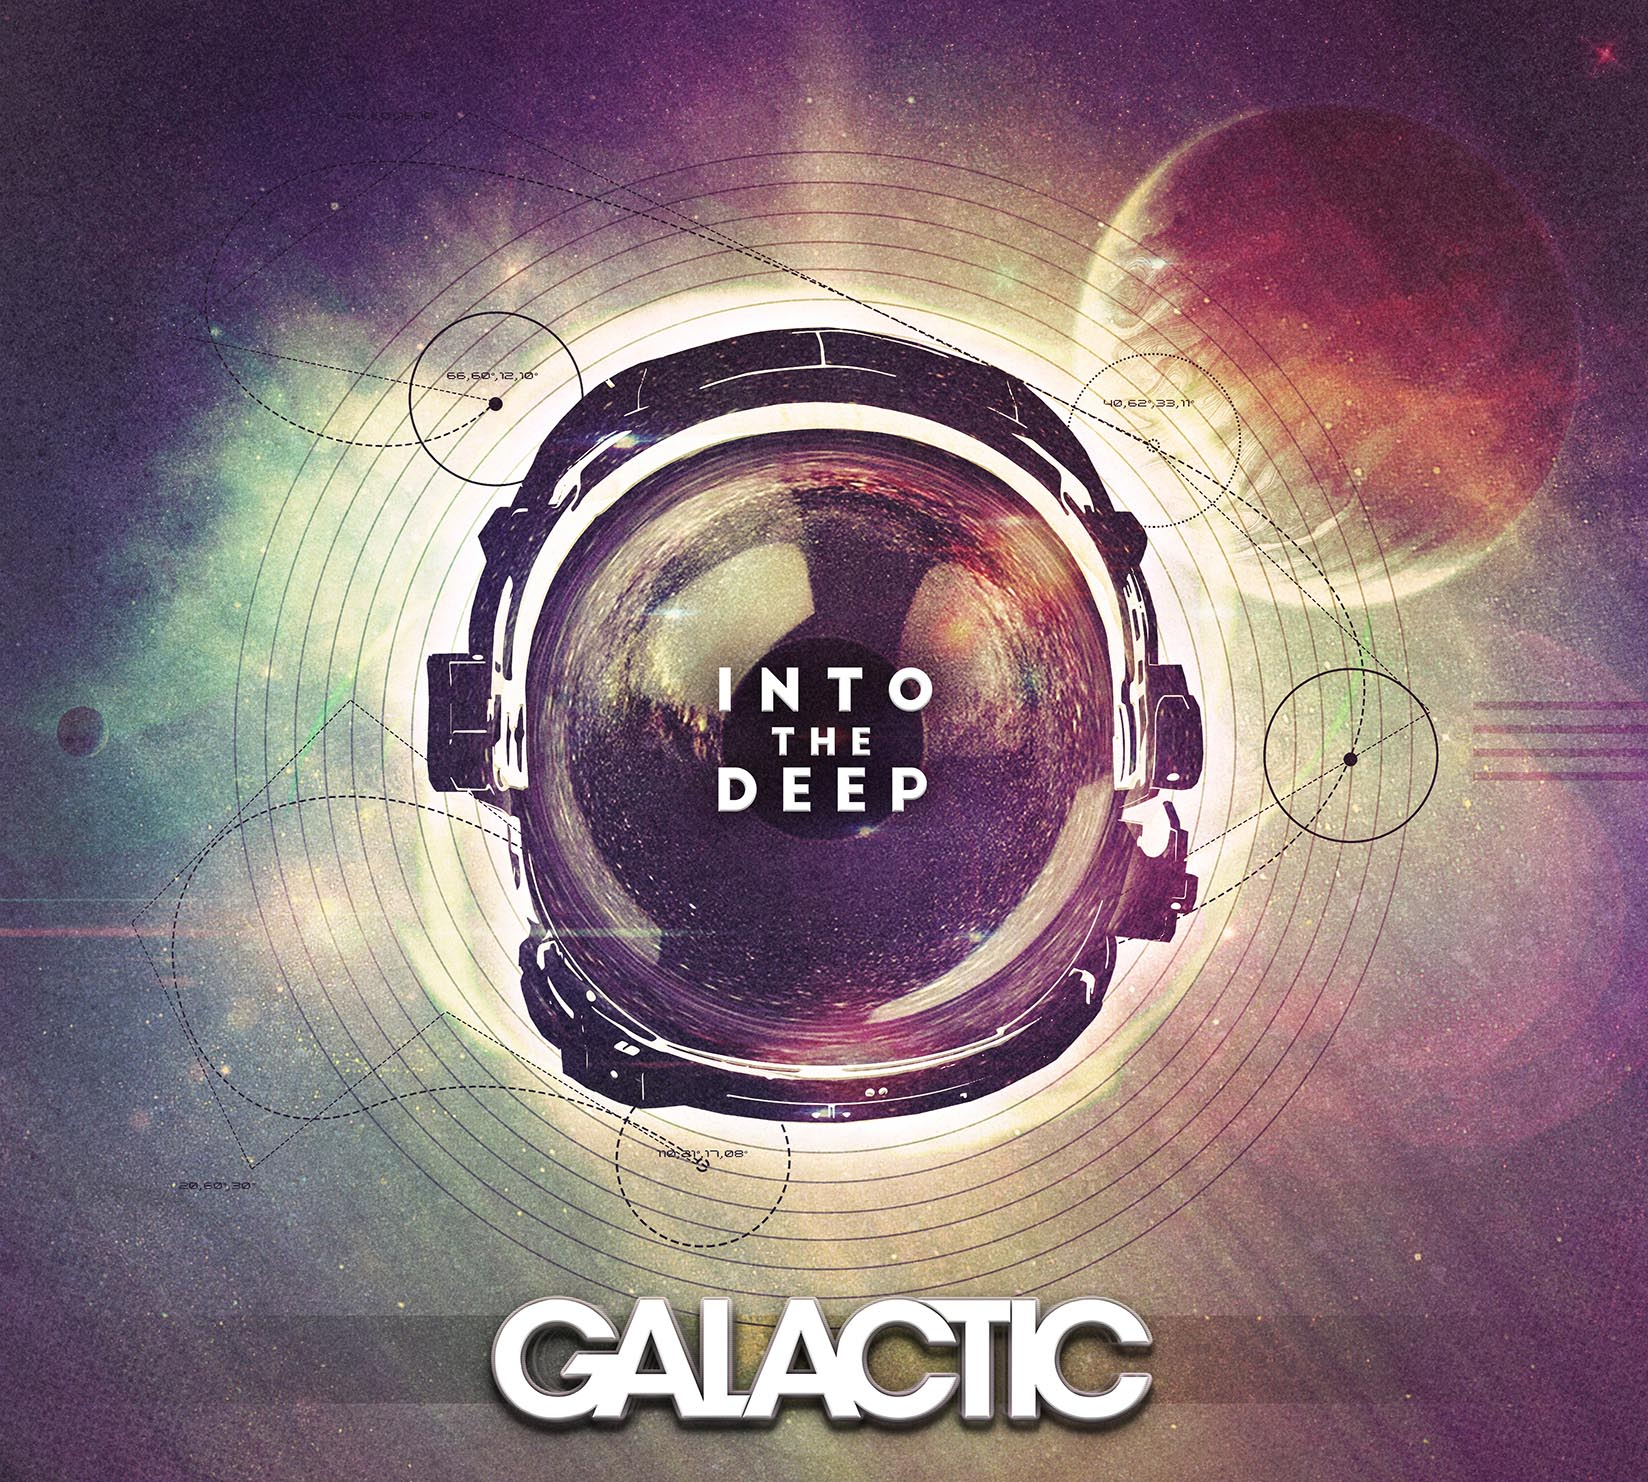 Galactic, Into the Deep album cover artwork. Image by: Galacticfunk.com